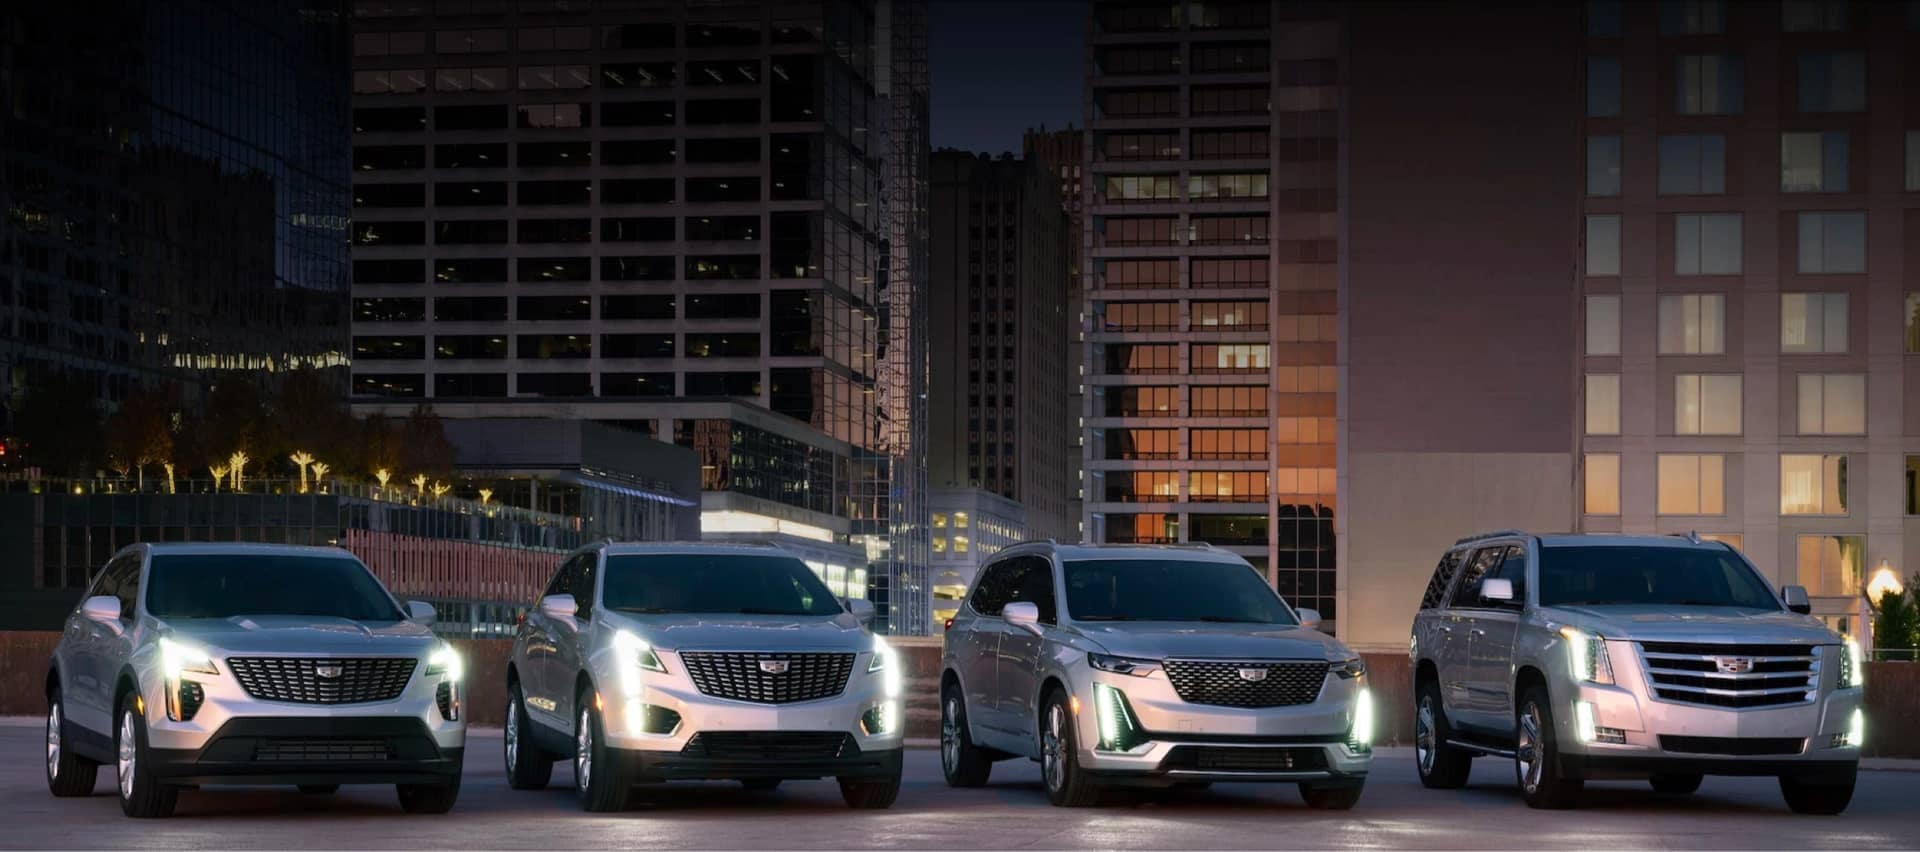 Cadillac vehicles parked in city at night